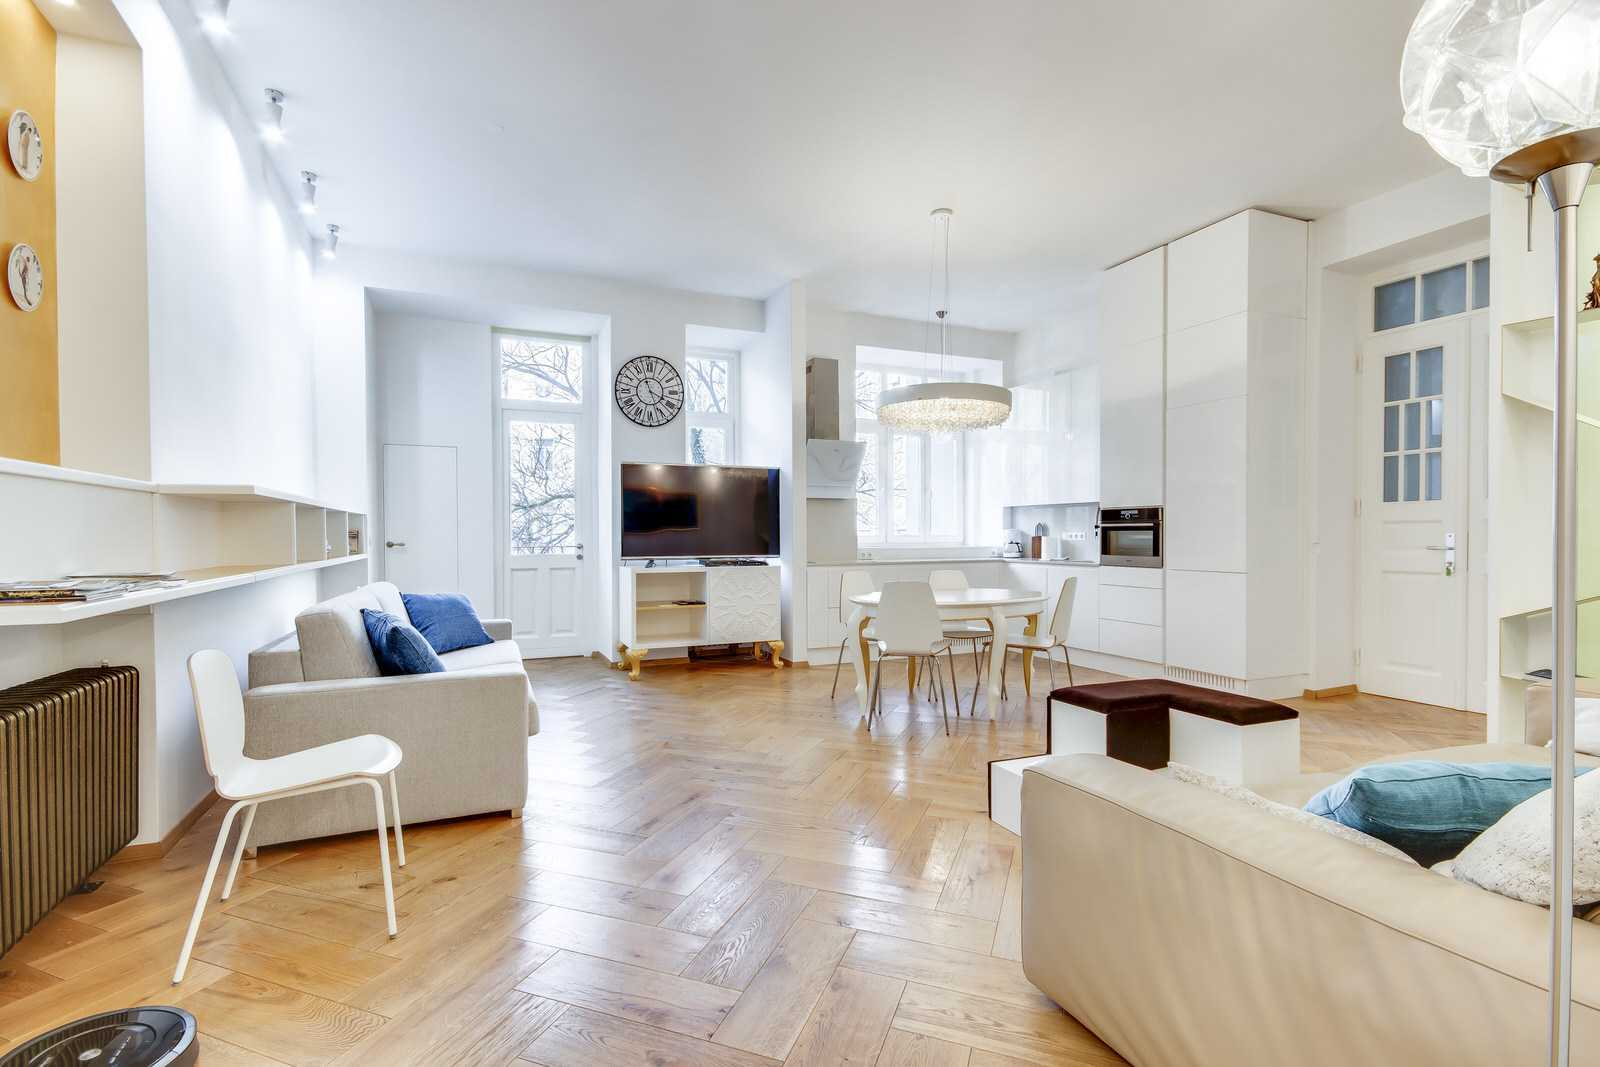 Modern, bright and extremly cozy open space living area with high ceilings, big windows and restored parquet floor.